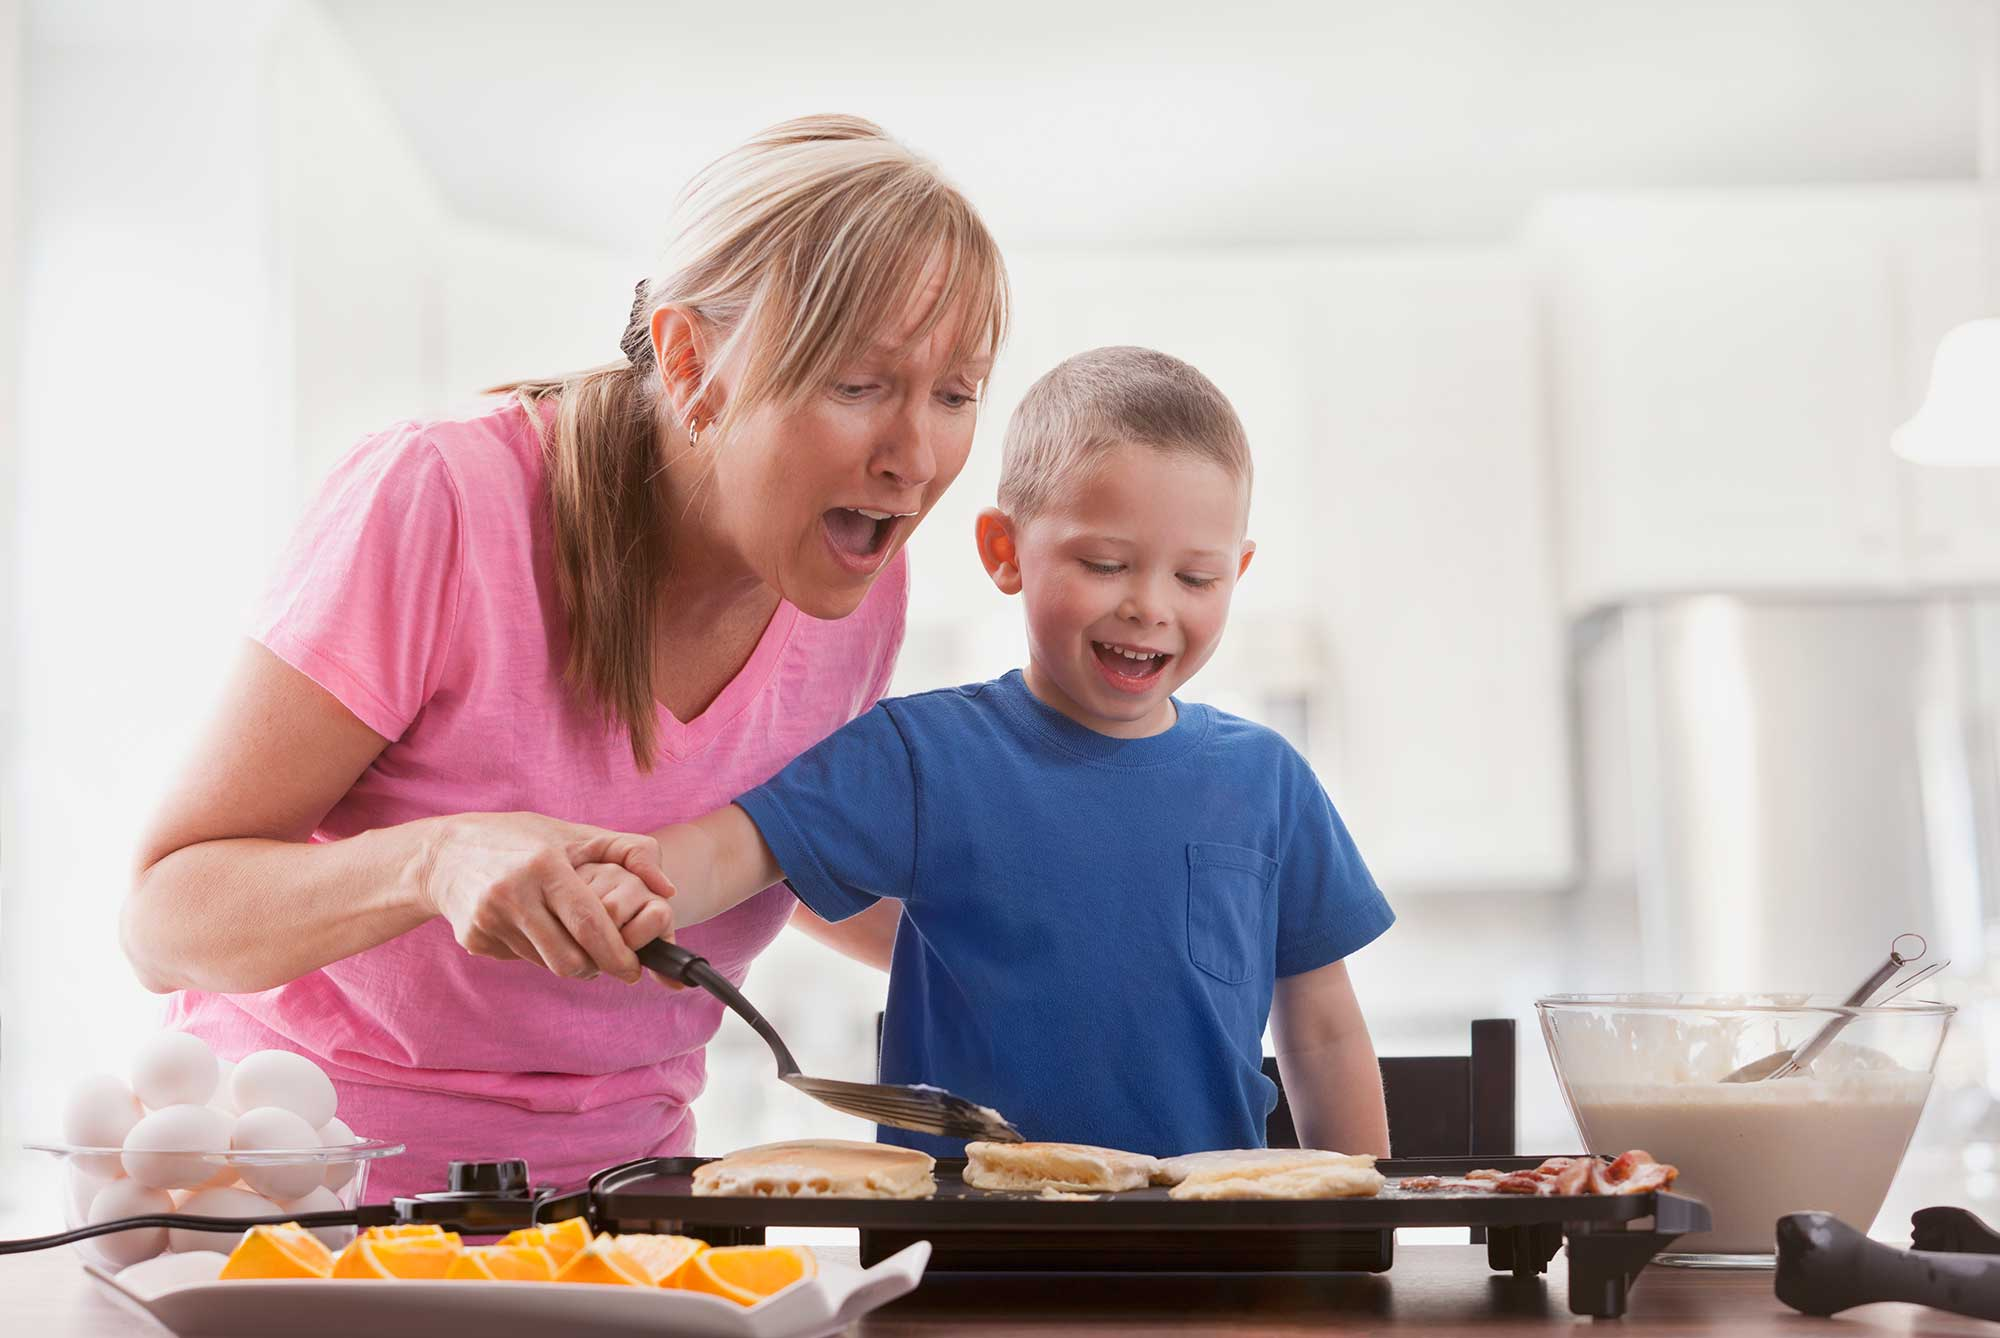 Mother and son making pancakes